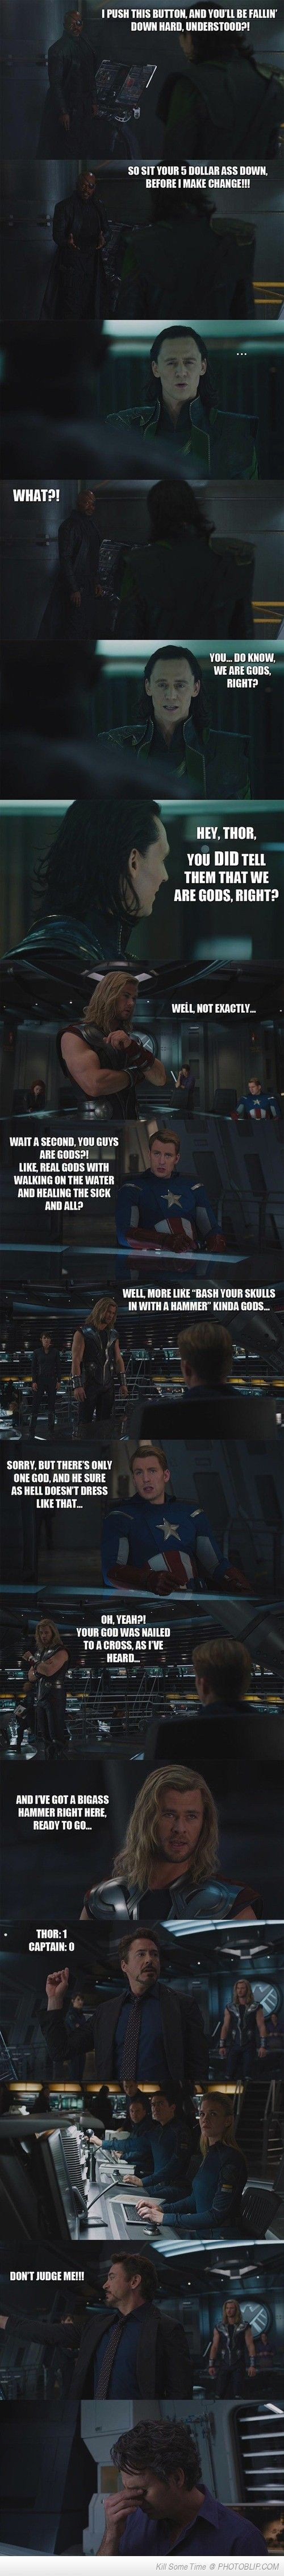 This Is What The Avengers Movie Should Have Said...